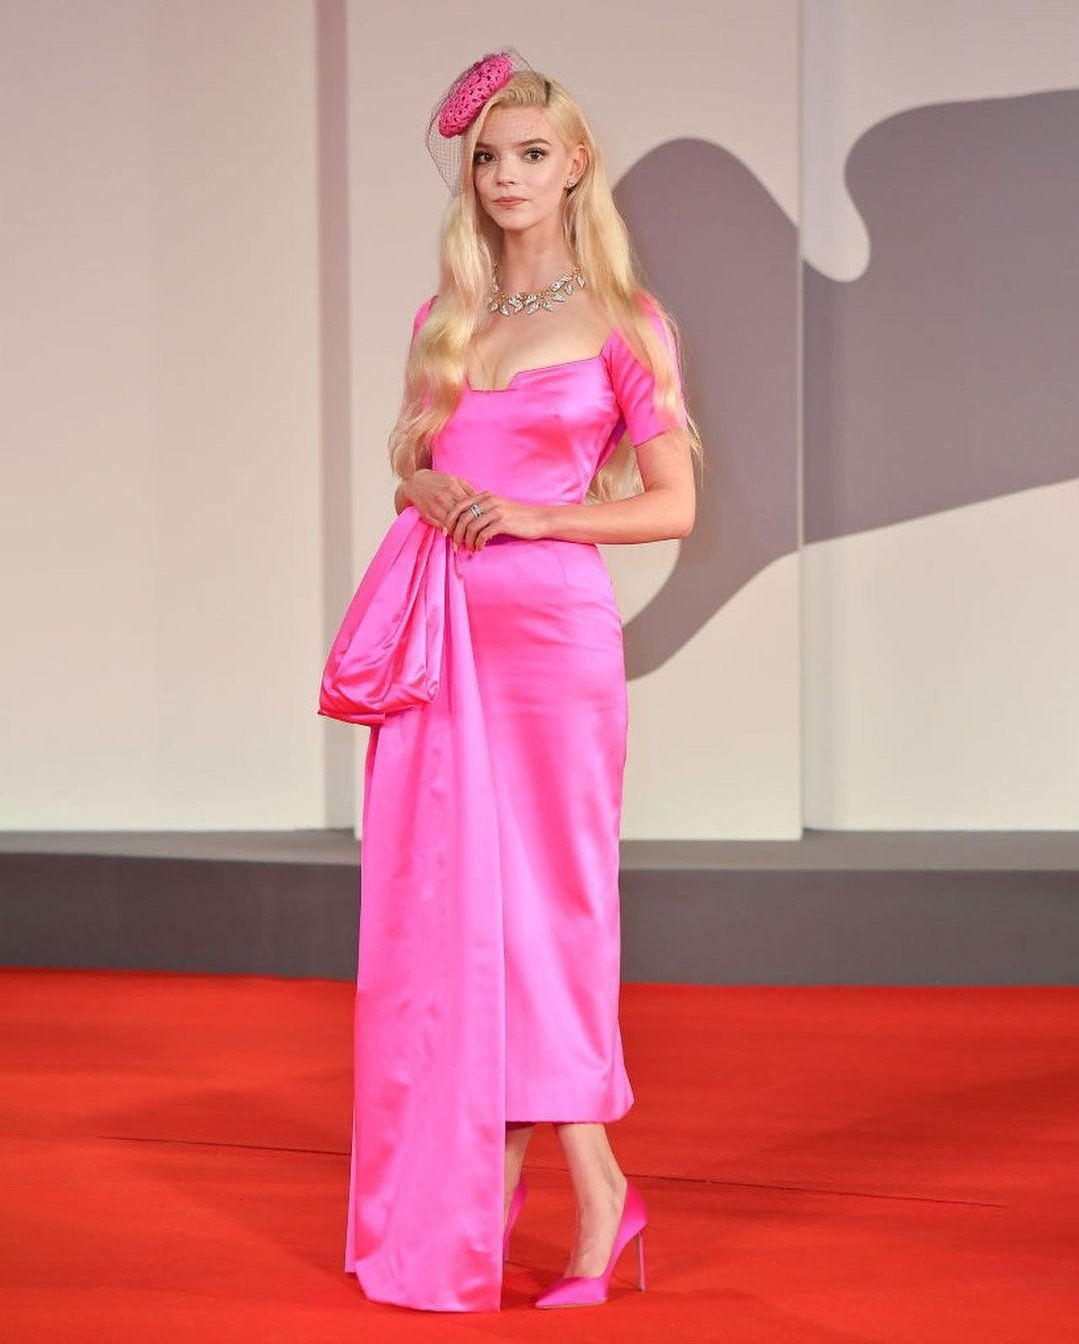 """Anya Taylor-Joy wore a #Dior Haute Couture hot pink dress, beret and shoes to the """"Last Night In Soho"""" premiere during the 2021 Venice Film Festival."""